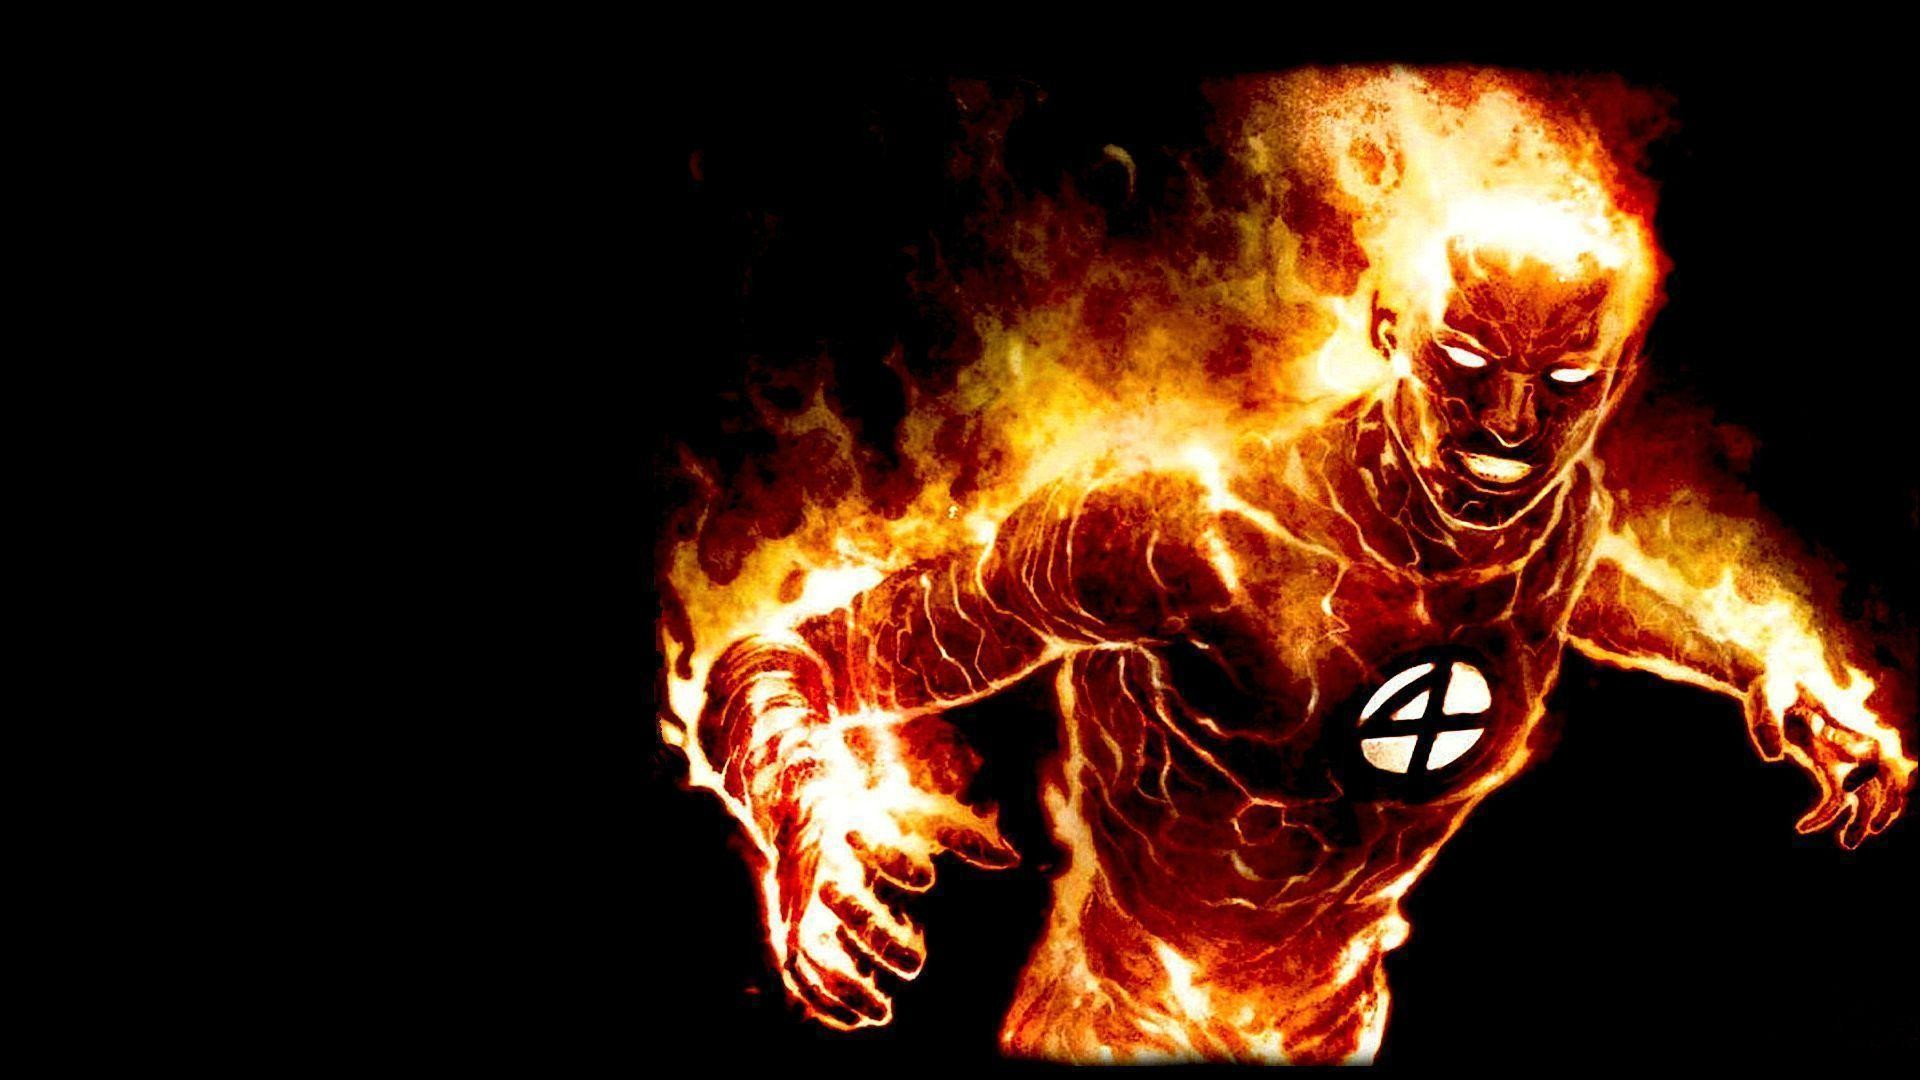 Res: 1920x1080, Human Torch 3 263698 Images HD Wallpapers| Wallfoy.com